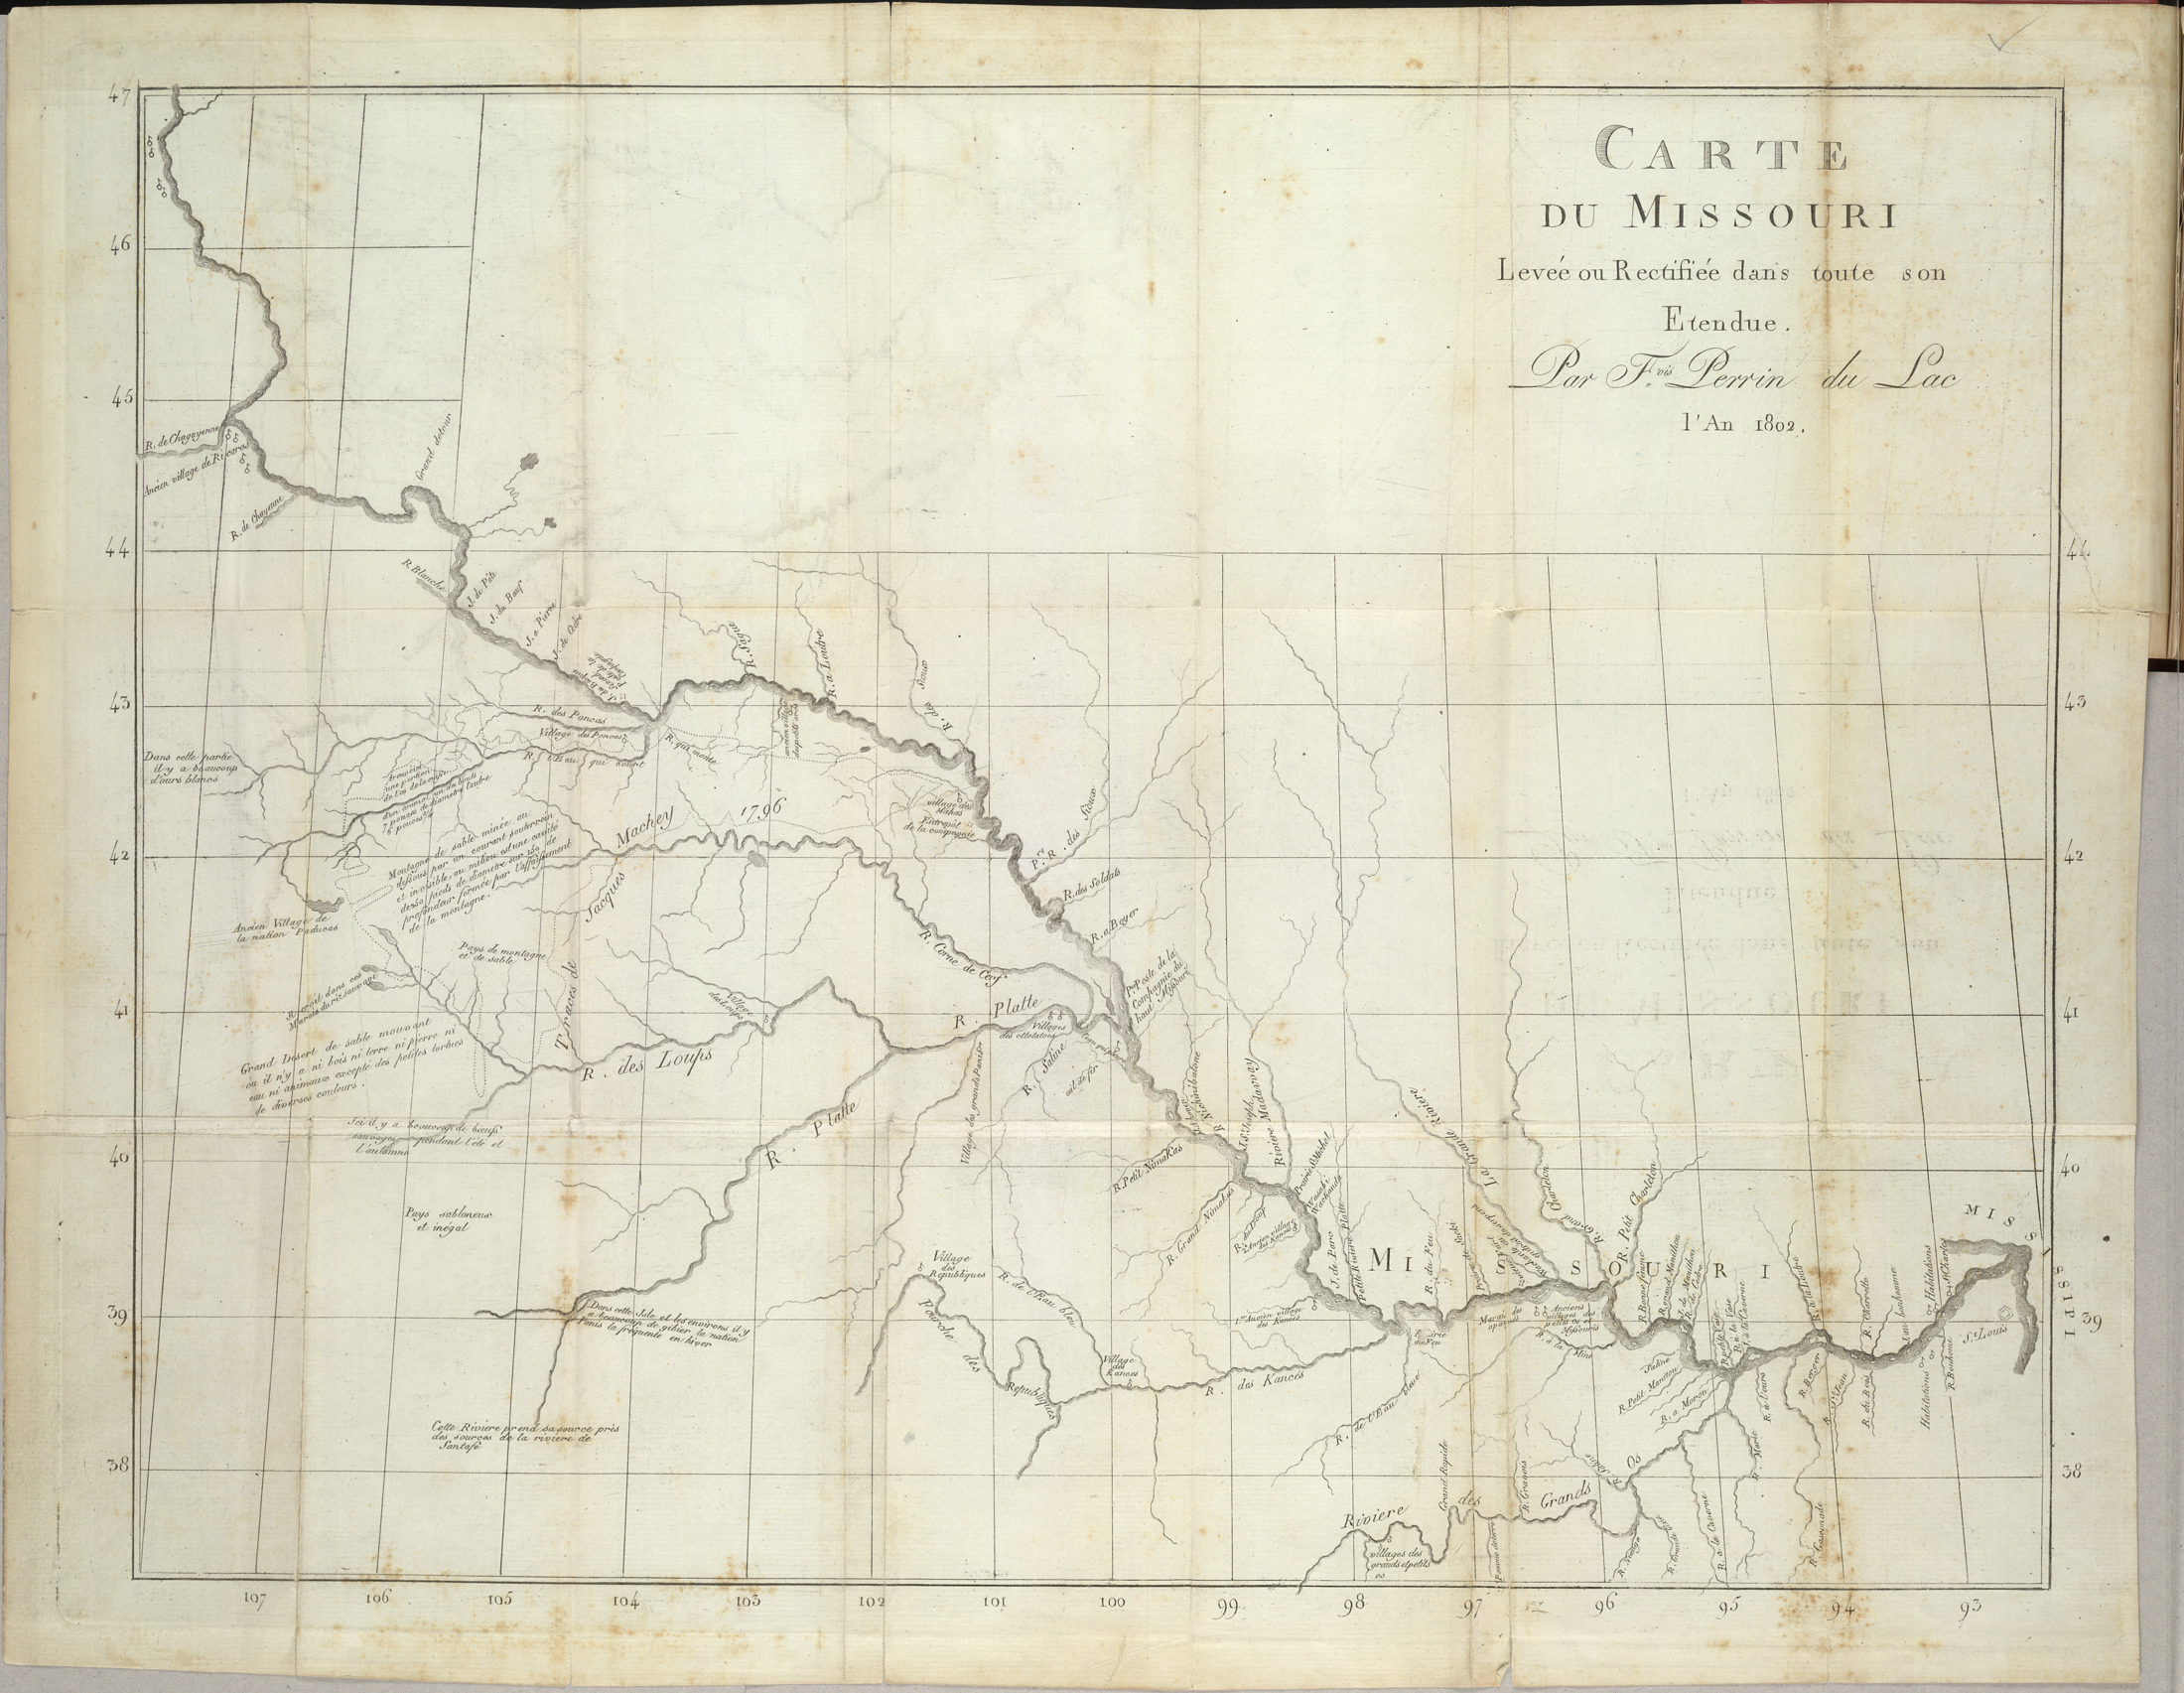 Republican river wikipedia perrin du lacs map of the banks of the missouri river 1802 sciox Choice Image